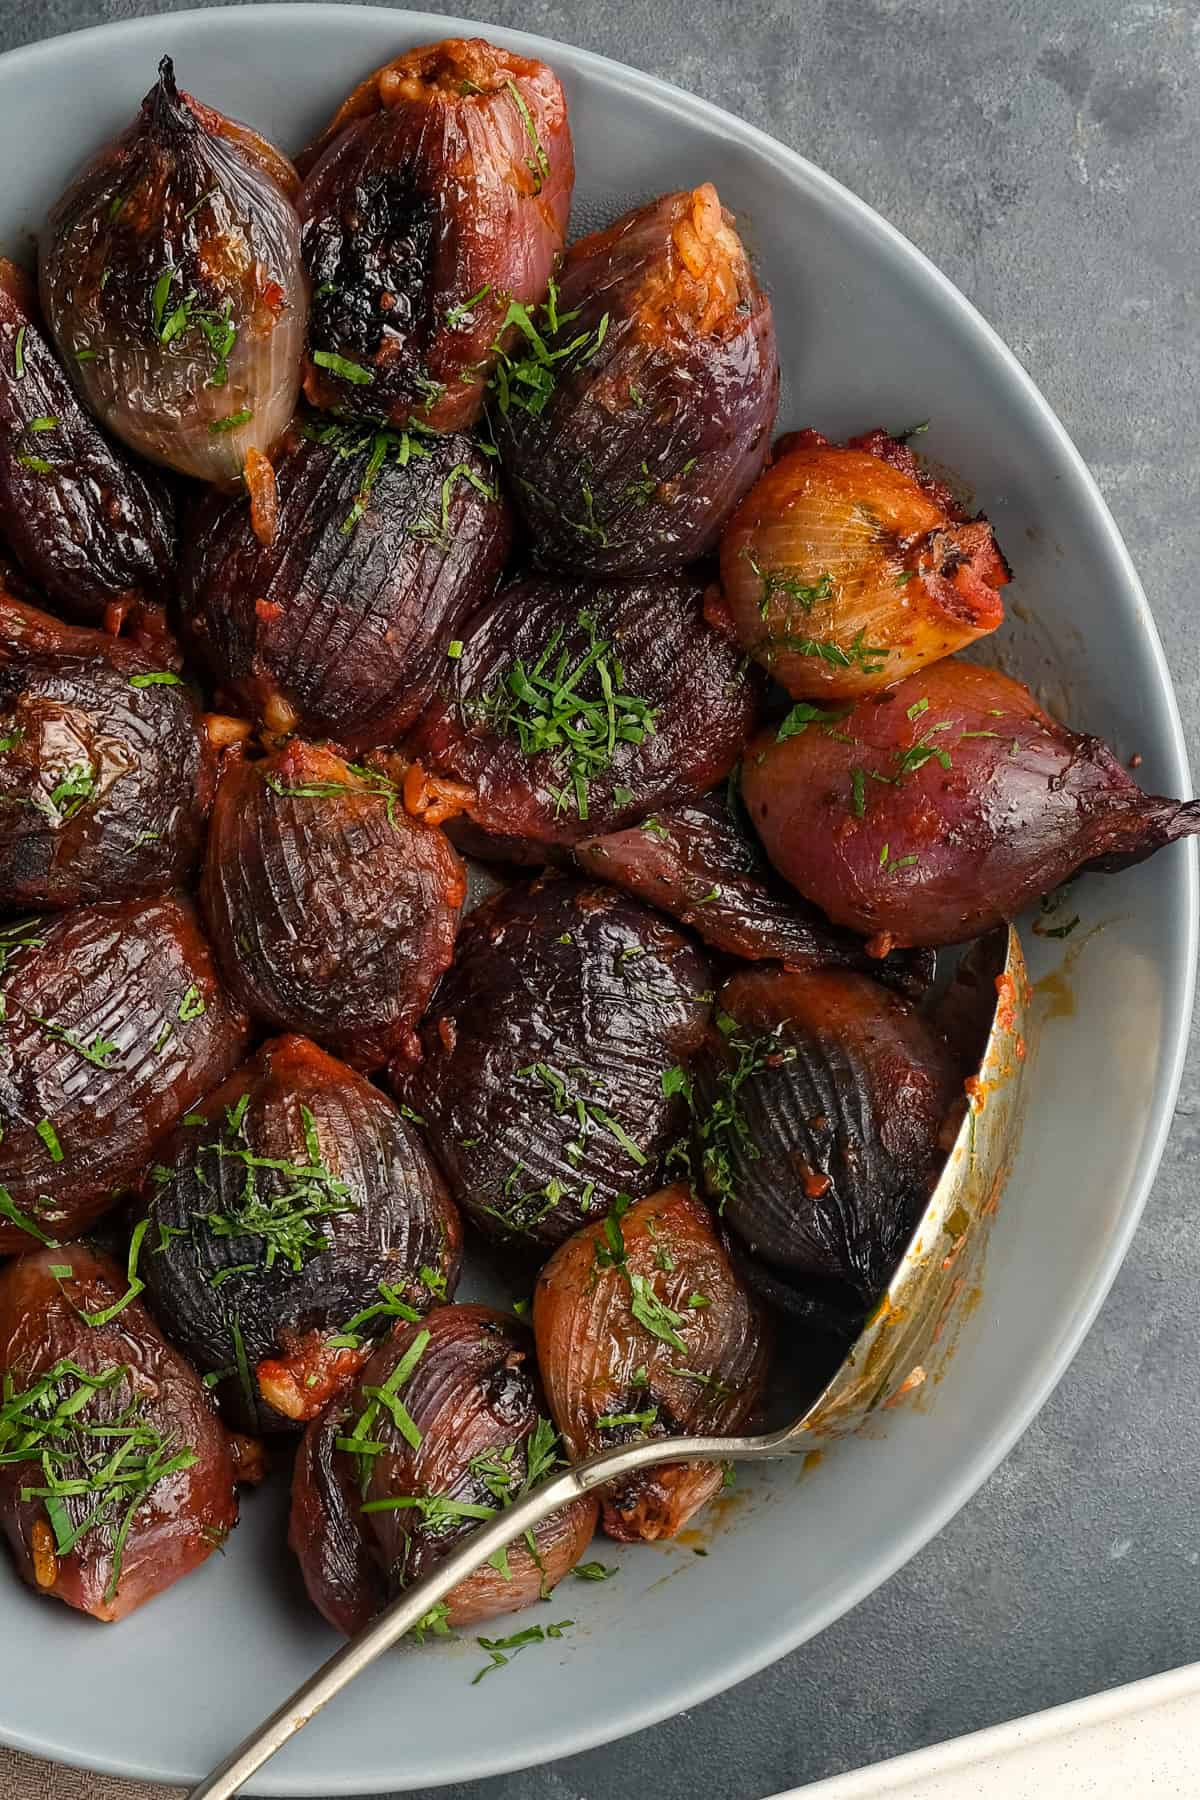 Baked stuffed onions in tomato sauce garnished with shopped parsley in a white dish with a spoon inside it.